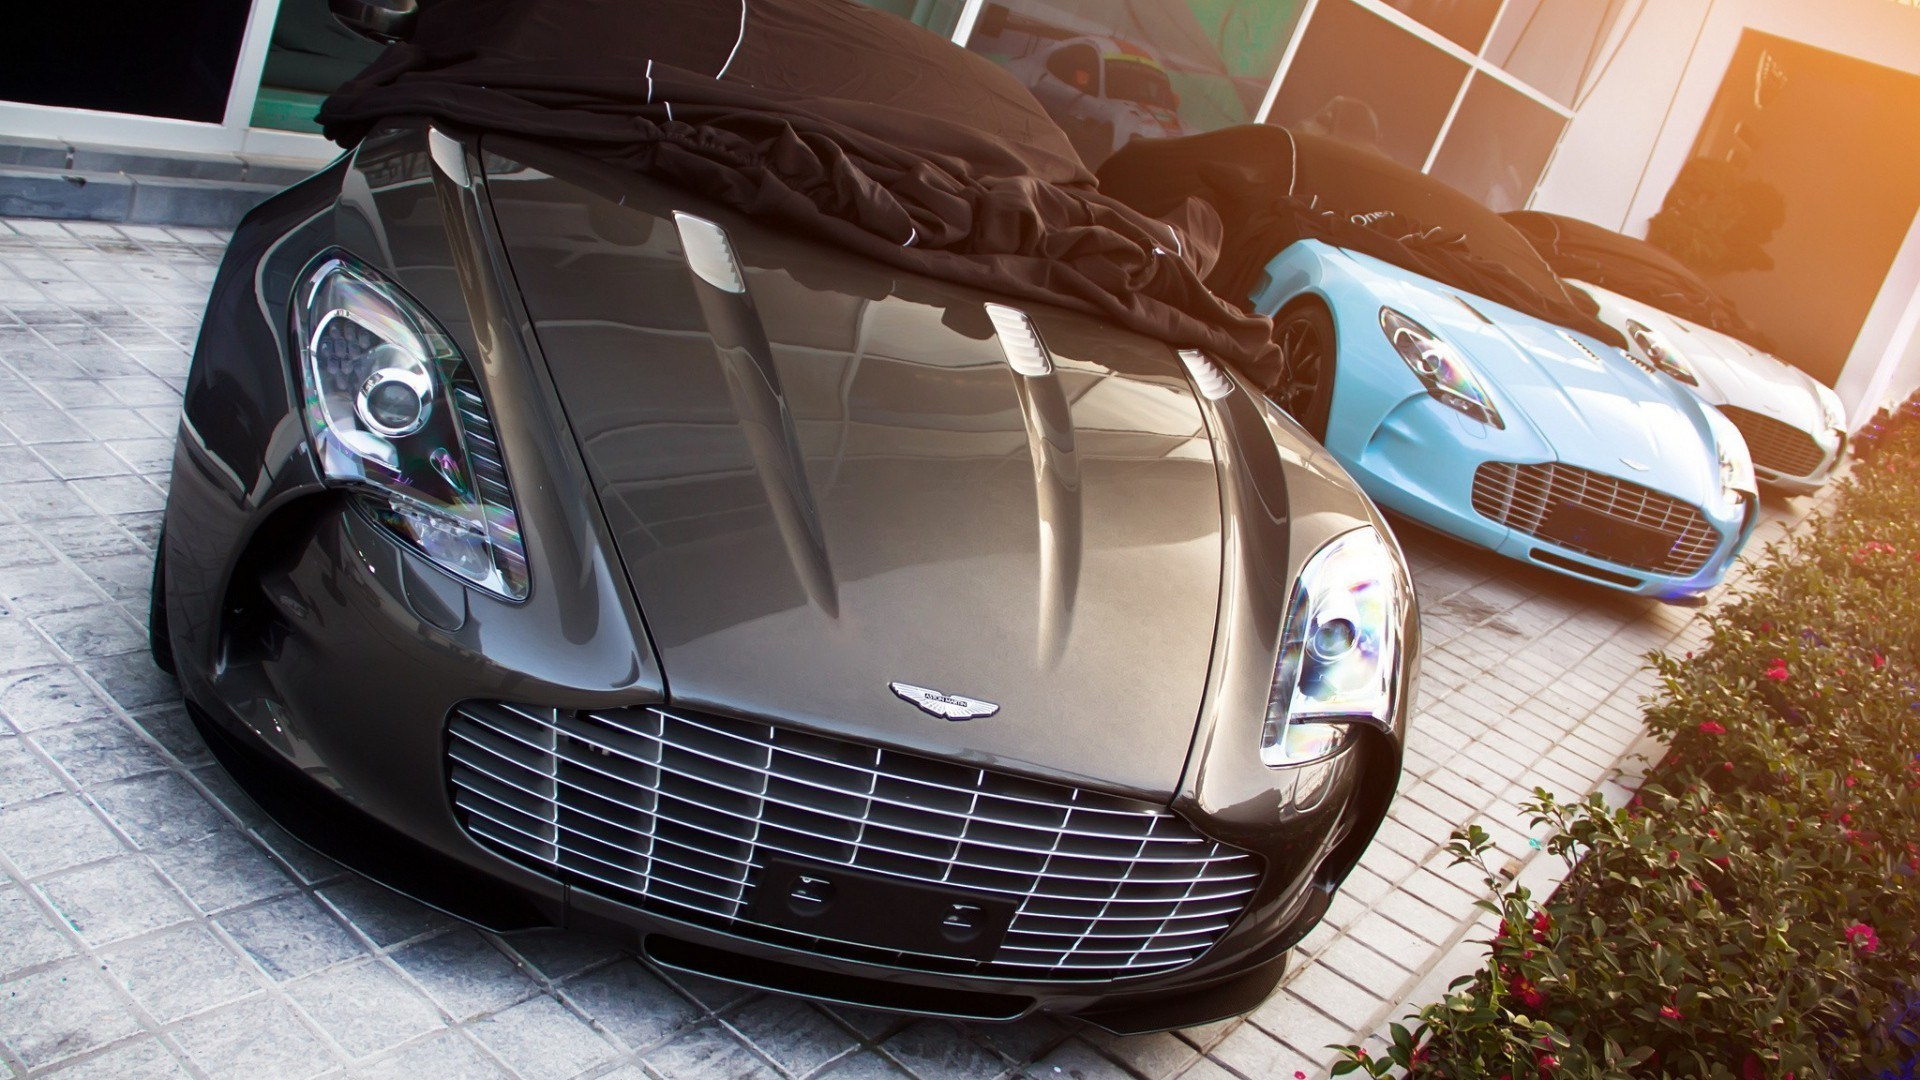 Free 3d Hd Wallpapers Pc Full Screen Download Aston Aston Martin Cars 1080p 927118 Hd Wallpaper Backgrounds Download